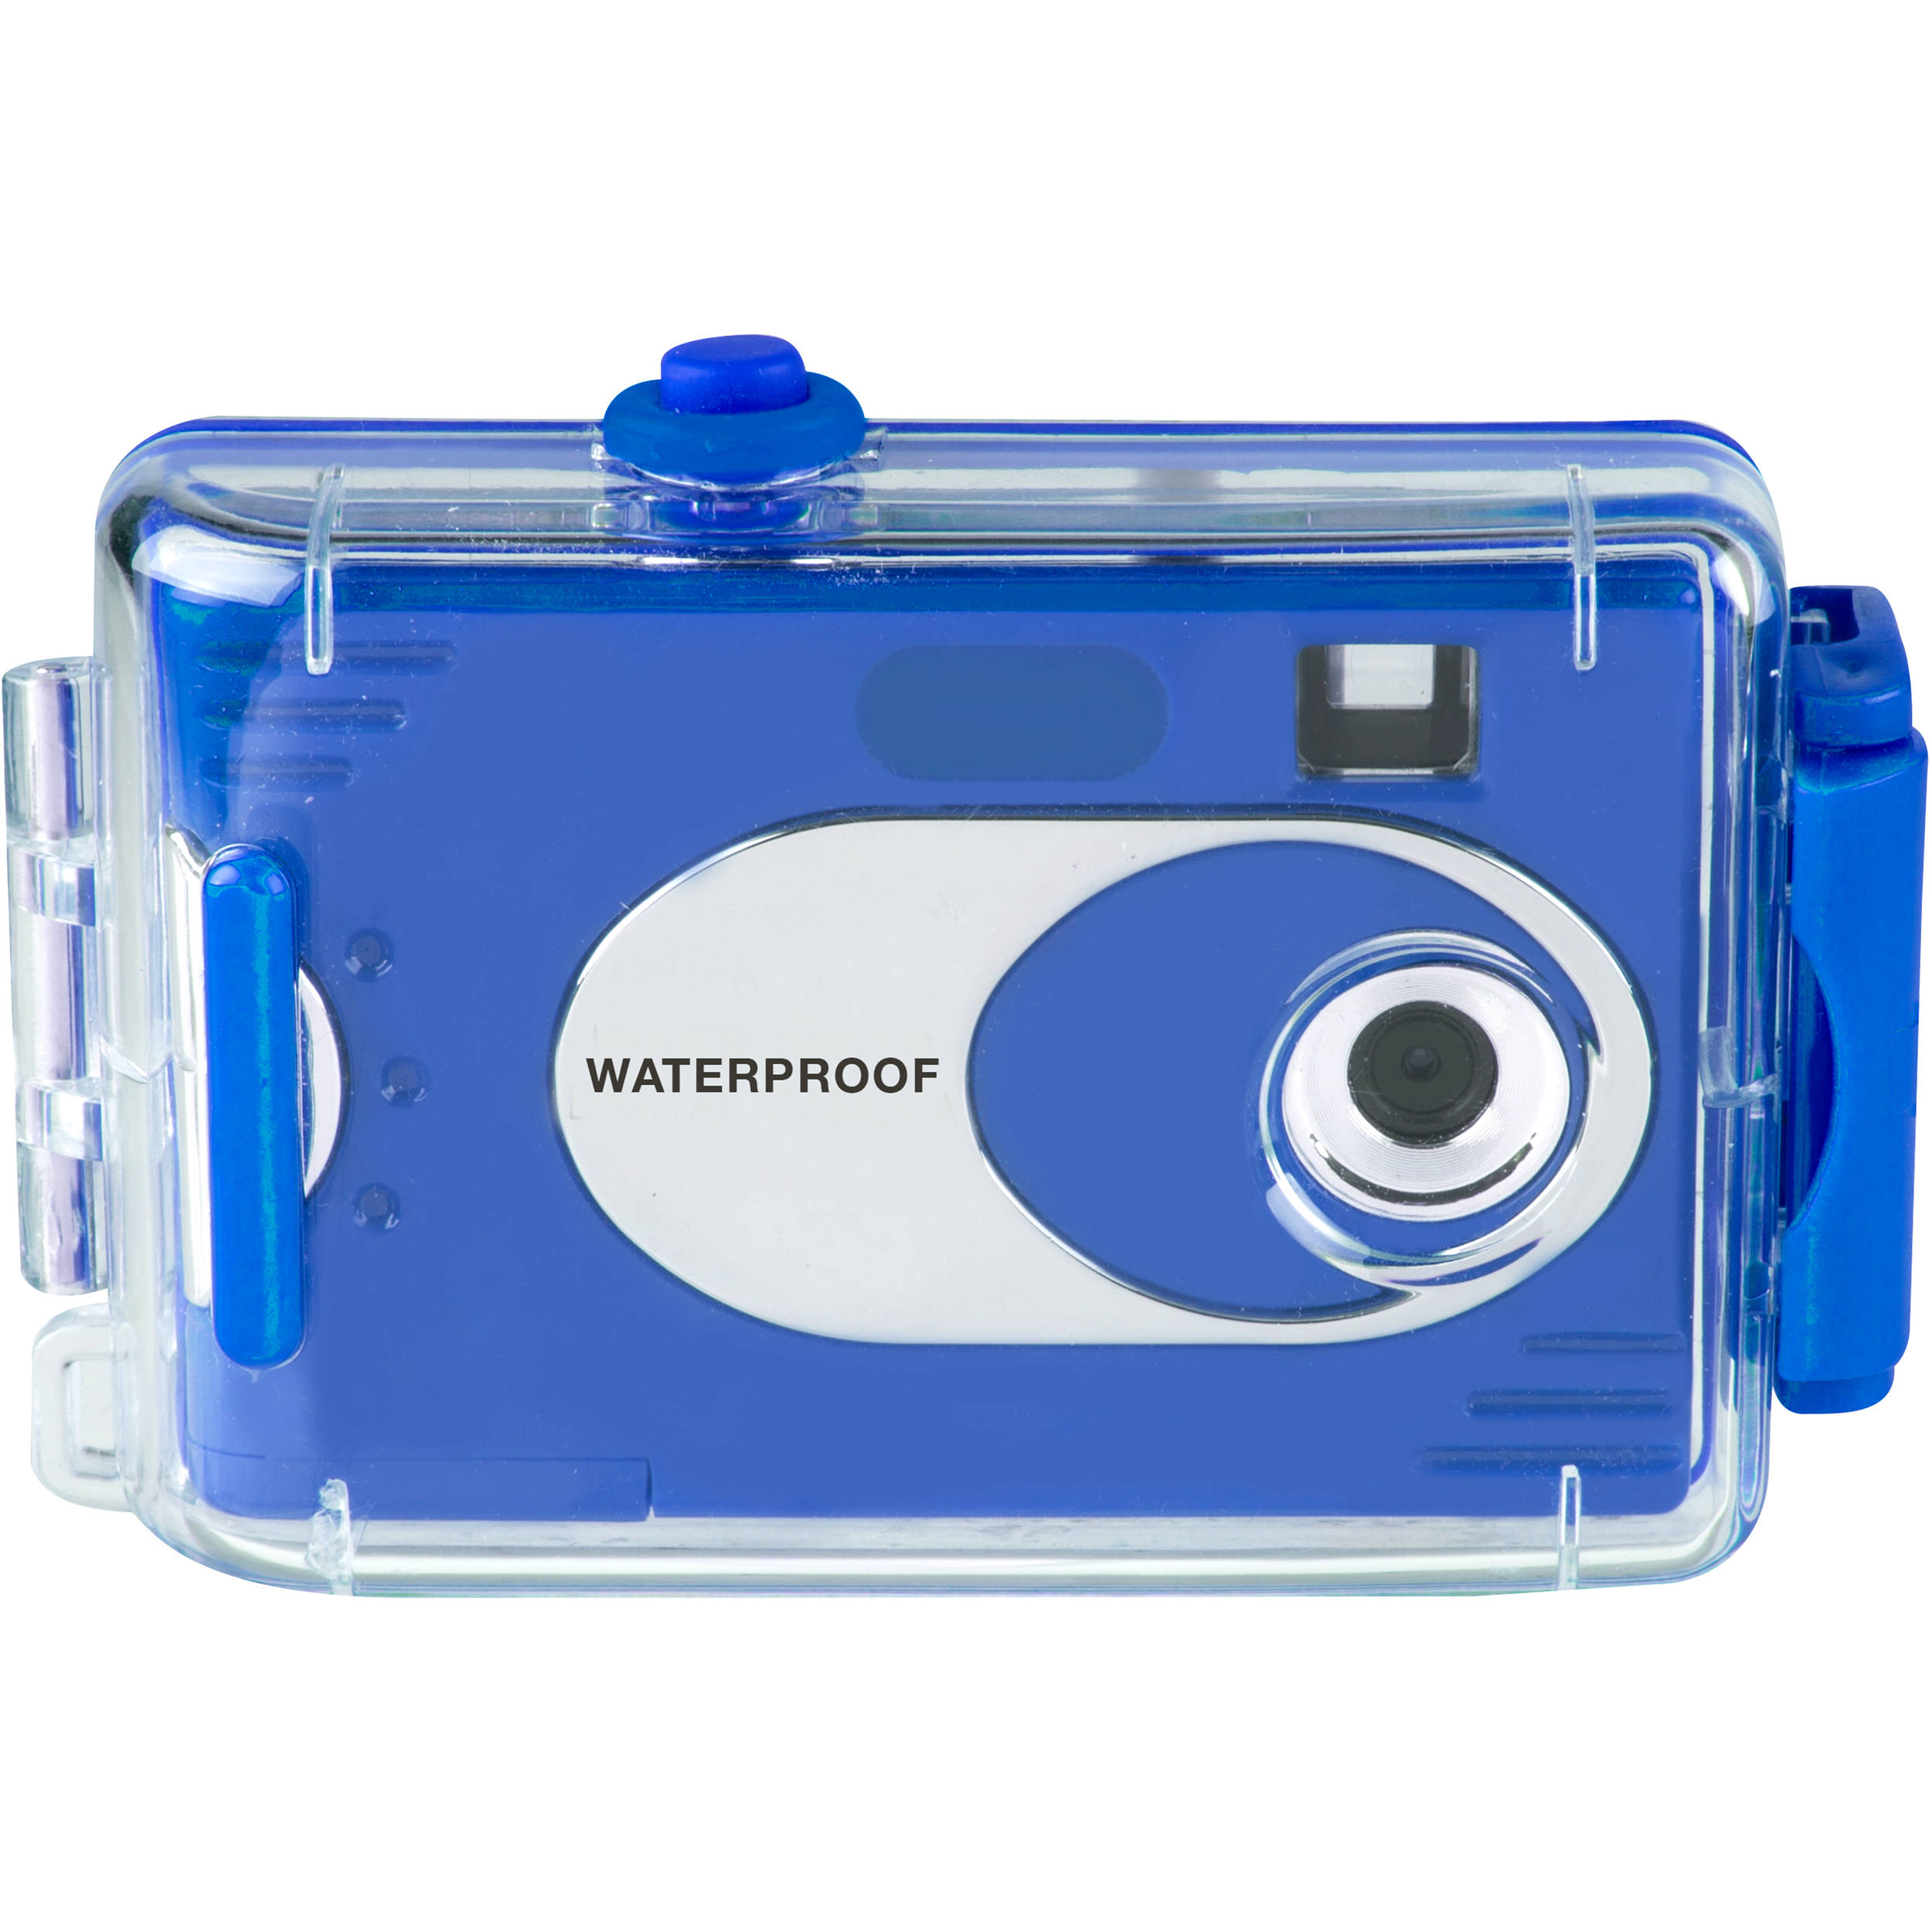 Vivitar AquaShot Underwater Digital Camera 26690-BLUE-KM B&H